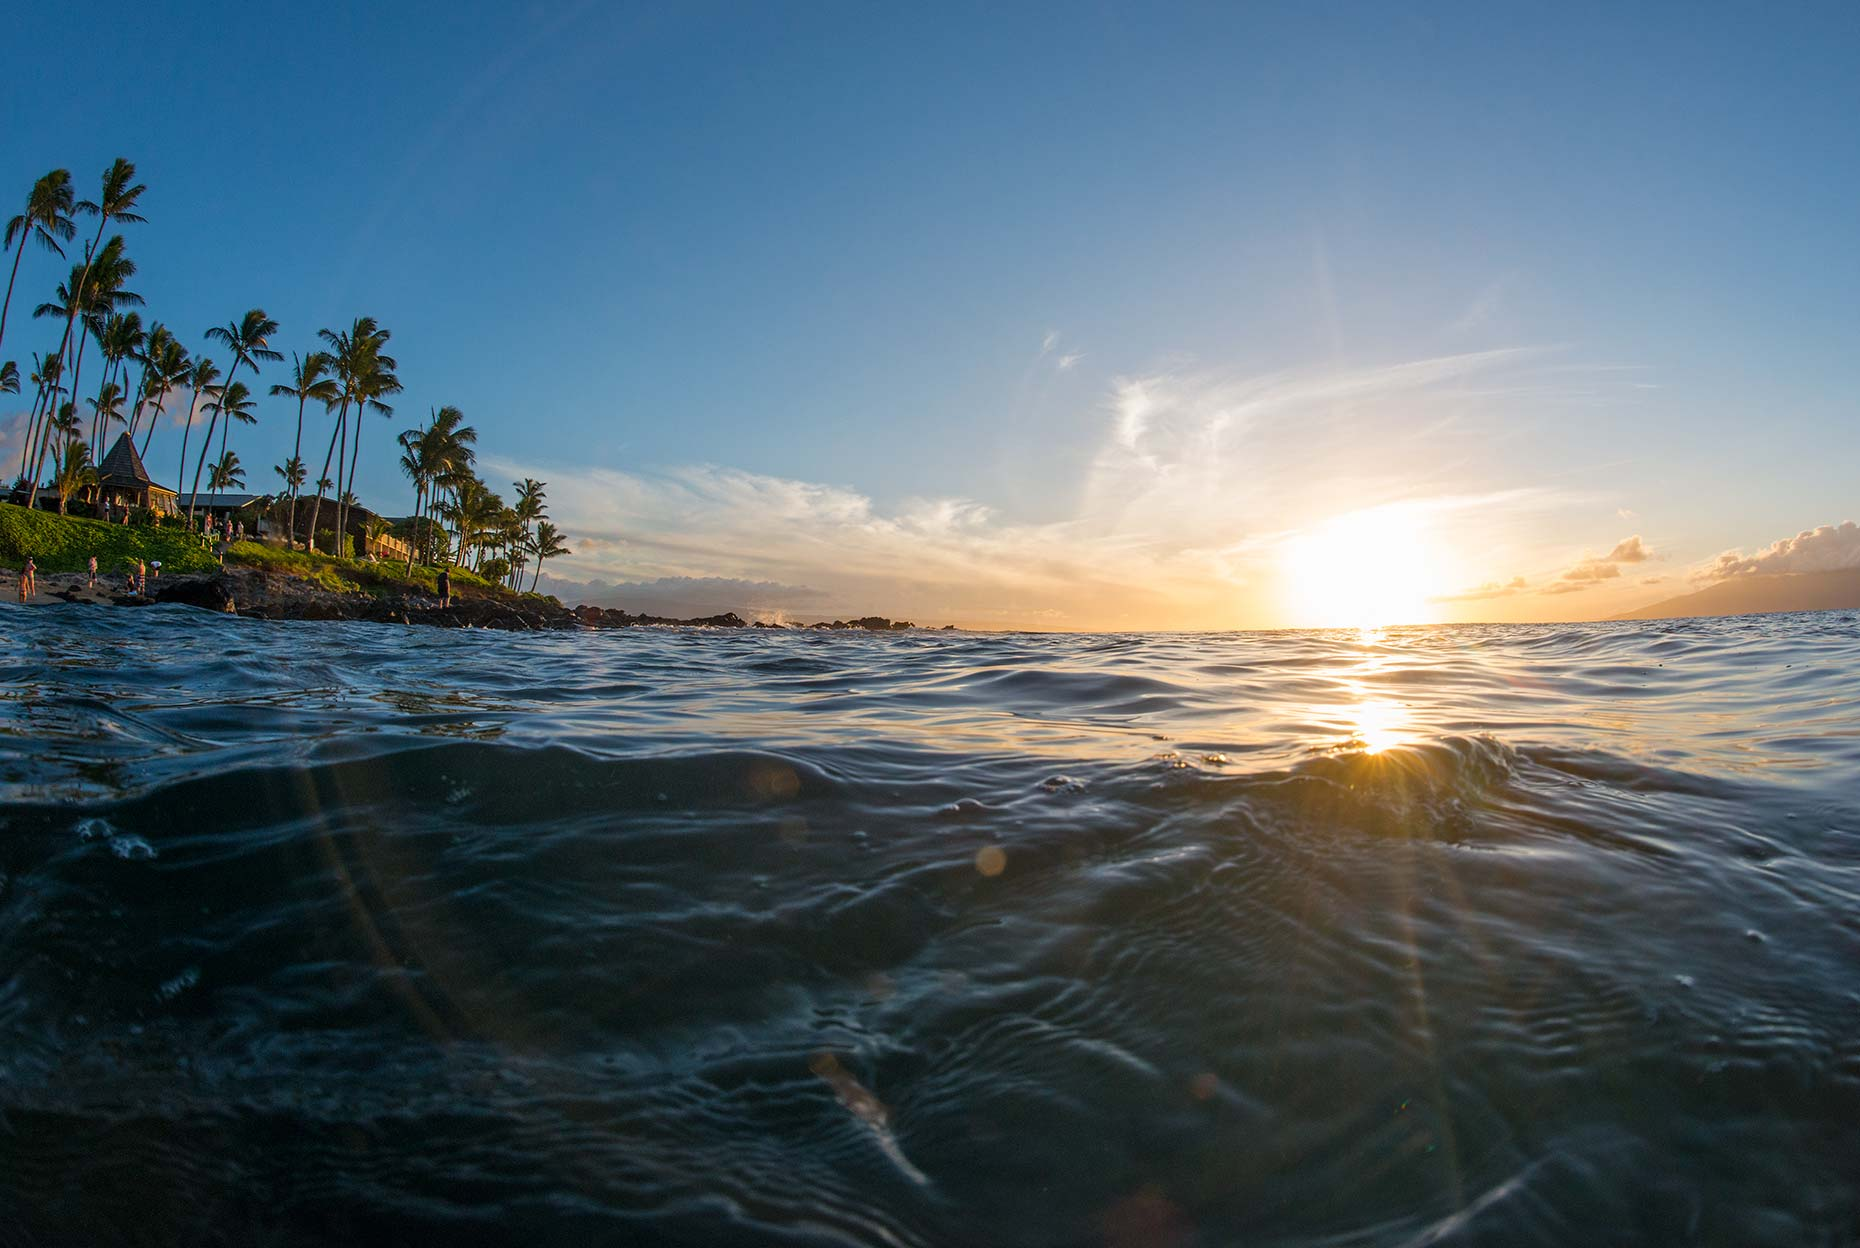 Ian-Coble-Sunset-Scenic-Ocean-Beach-Hawaii-Maui